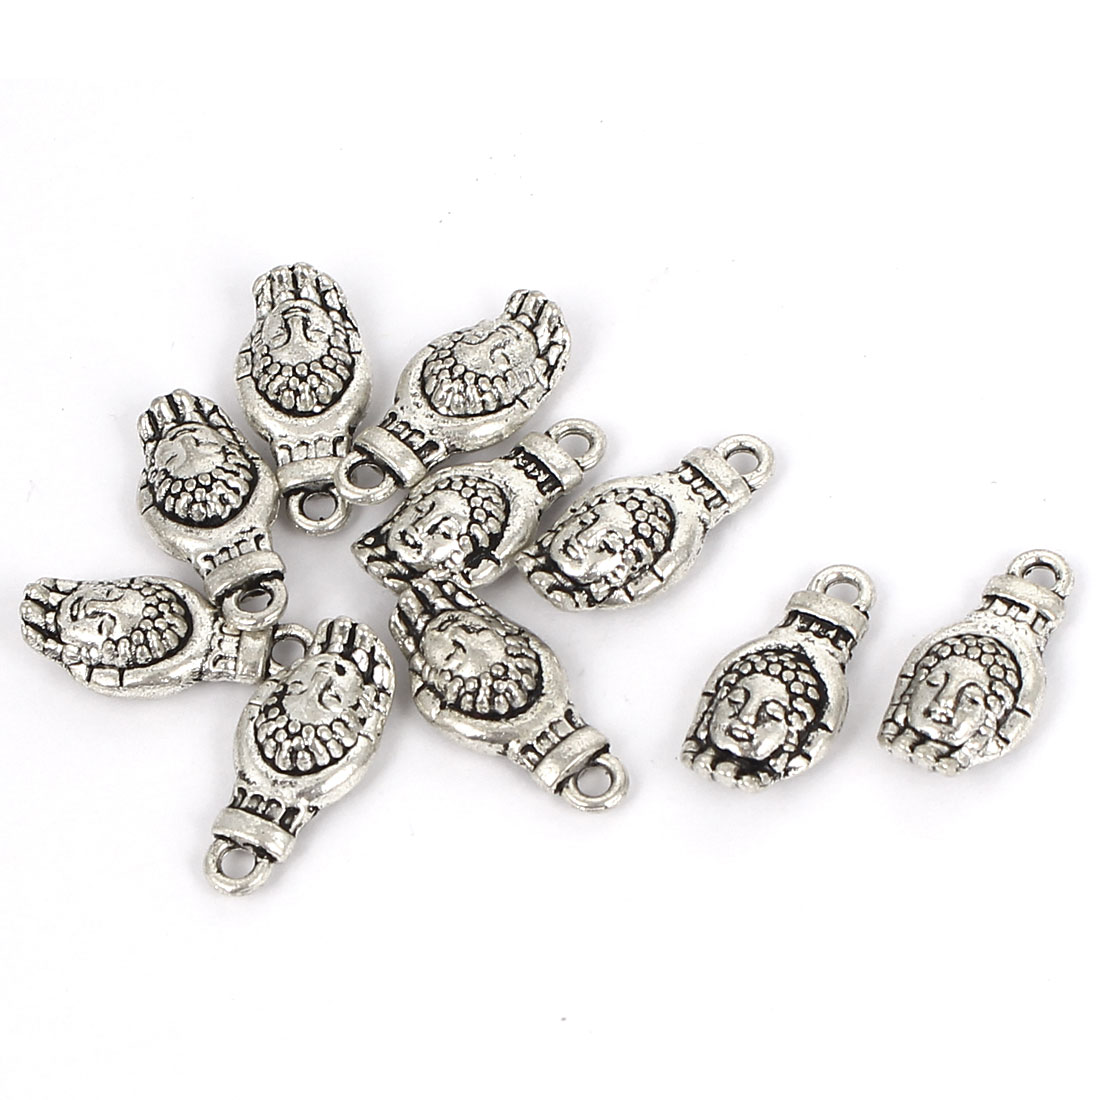 DIY Craft Findings Jewelry Making Metal Buddha Hand Pendant Silver Tone 10Pcs